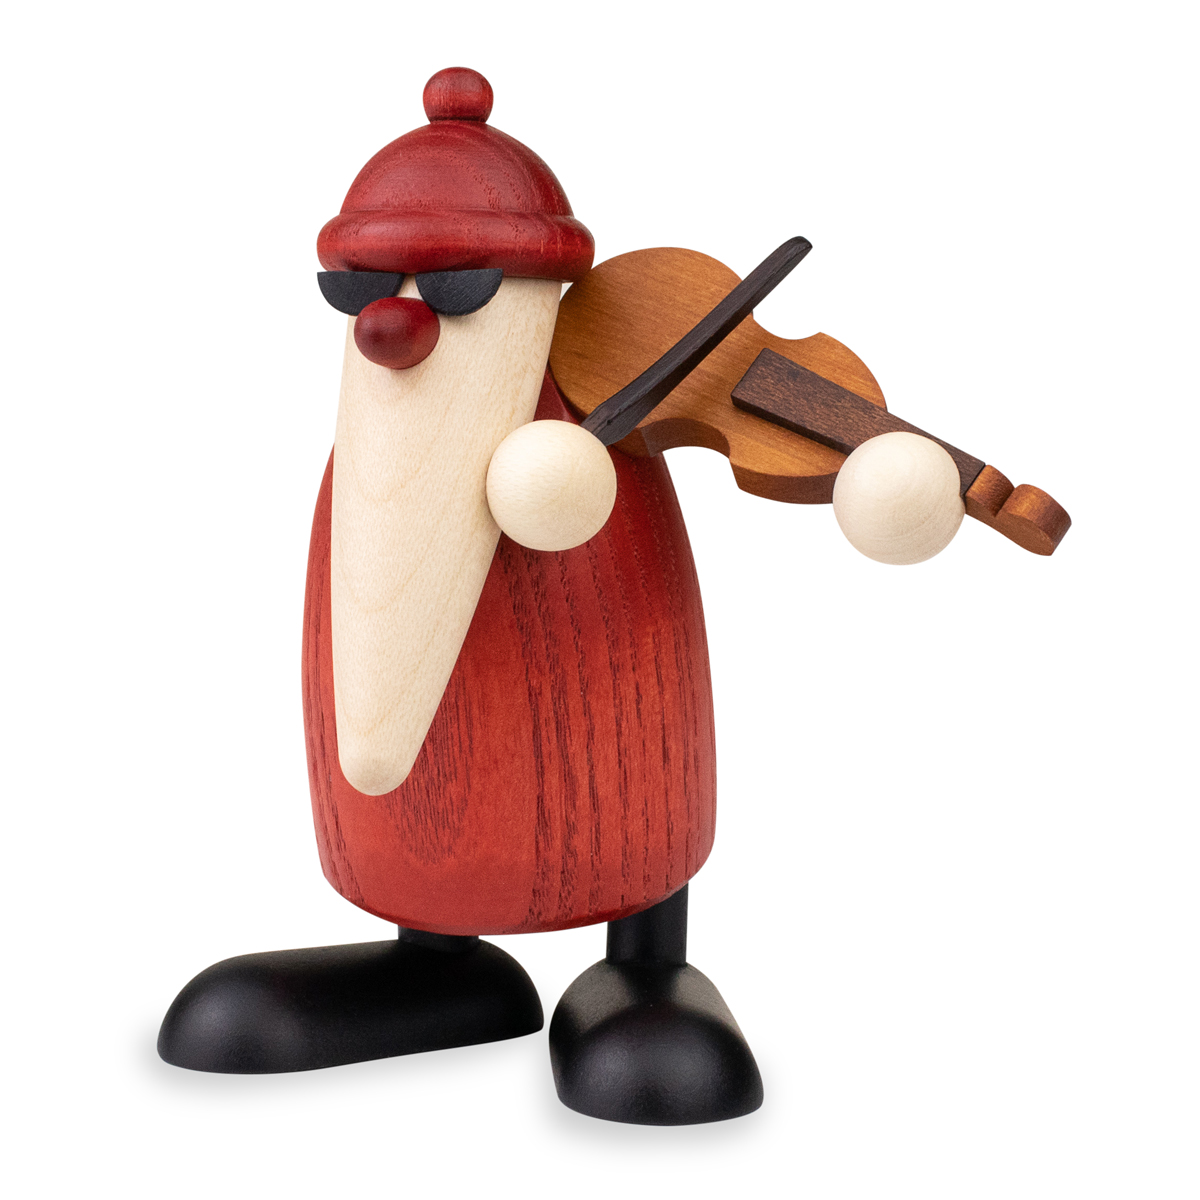 Bjoern Koehler Kunsthandwerk - NEW: Santa Claus playing the violin, small